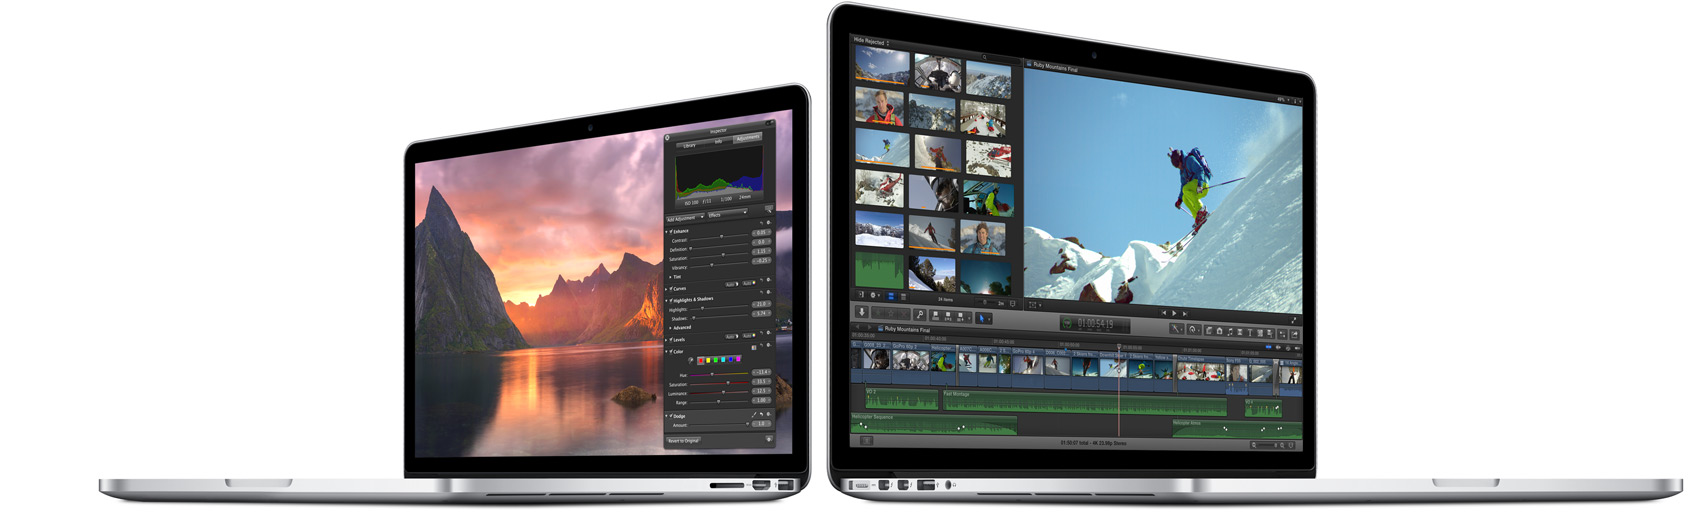 macbook pro retina model refreshed